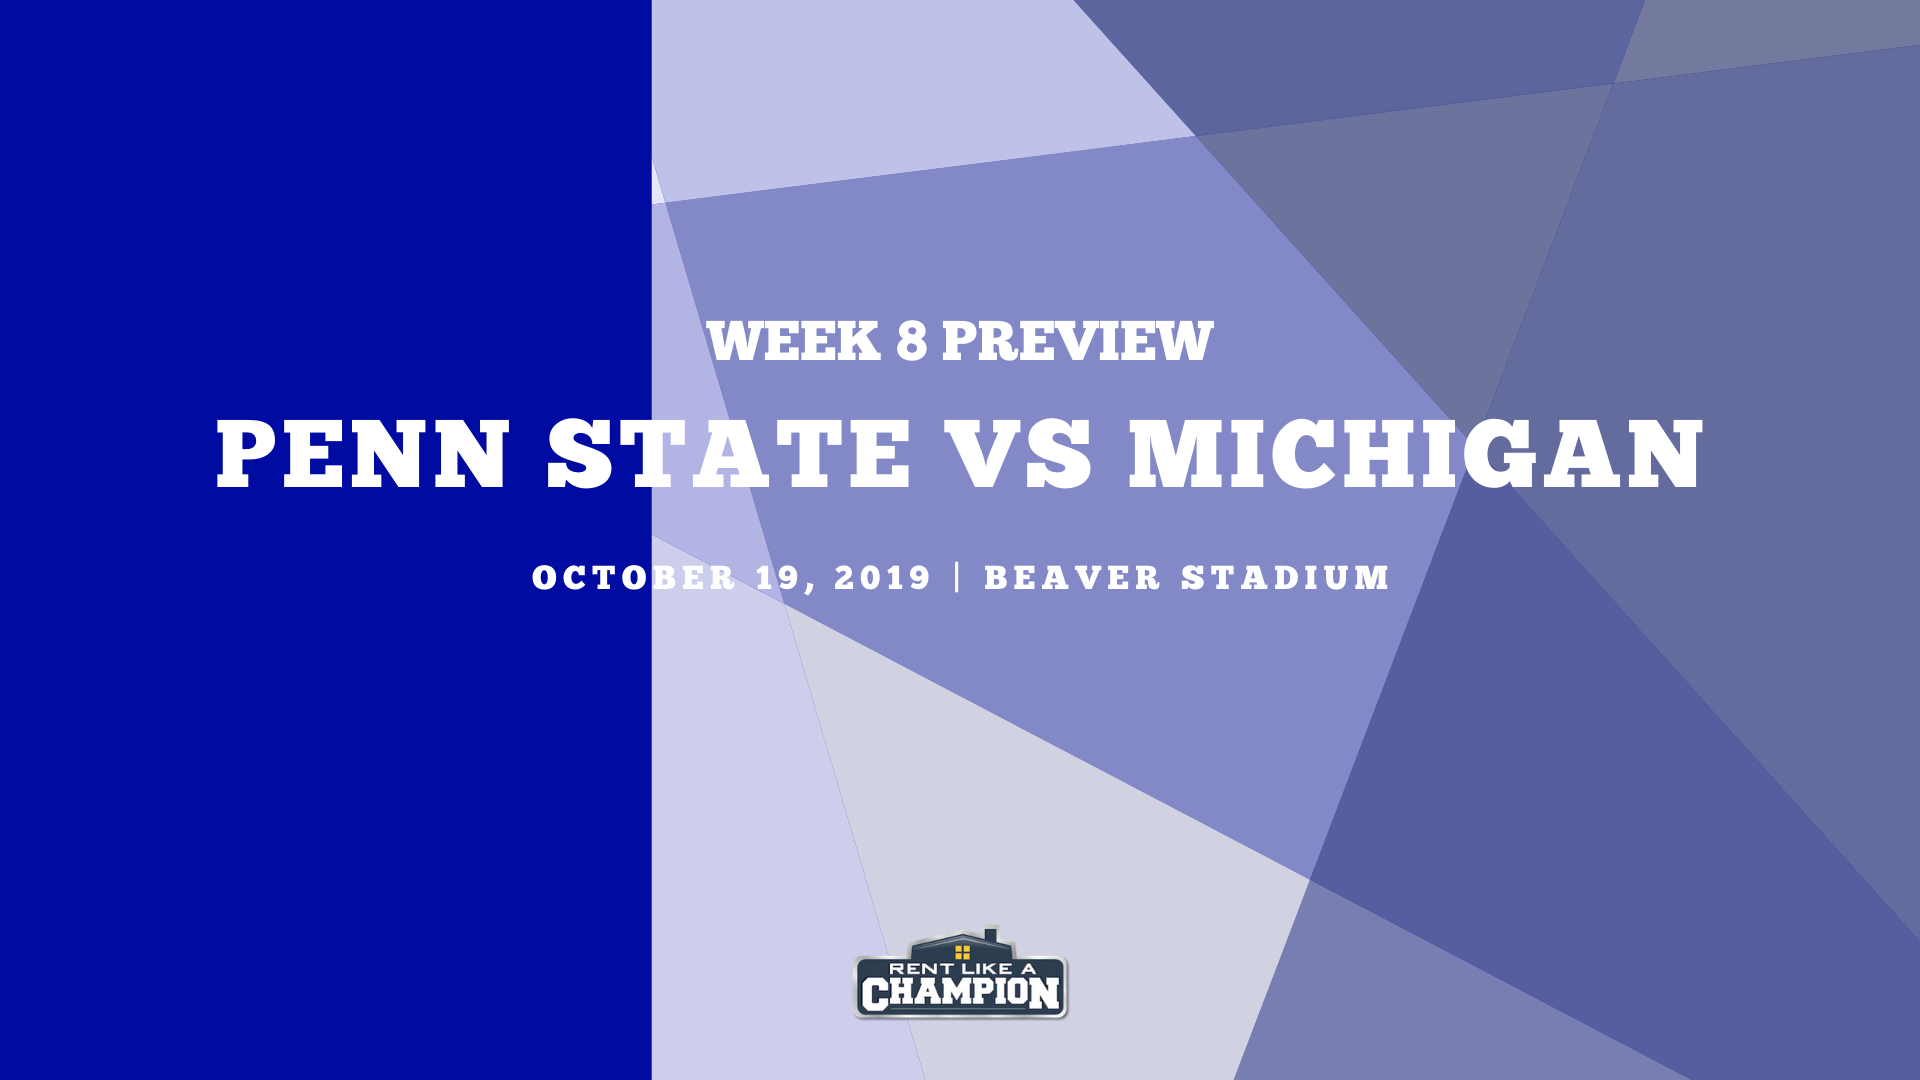 Penn State Game Preview Template (5)